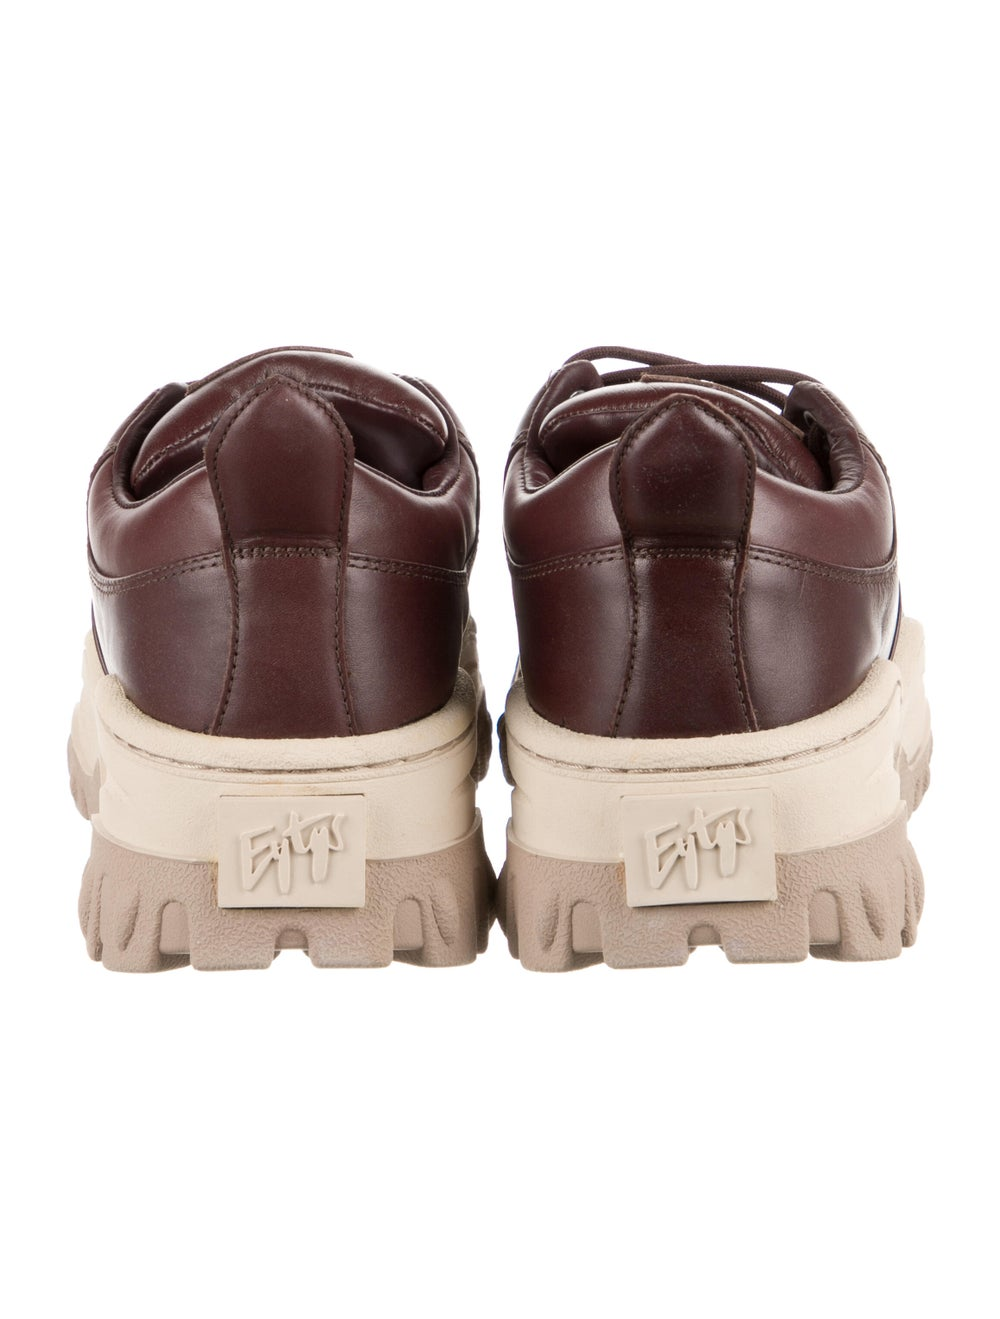 Eytys Leather Chunky Sneakers - image 4